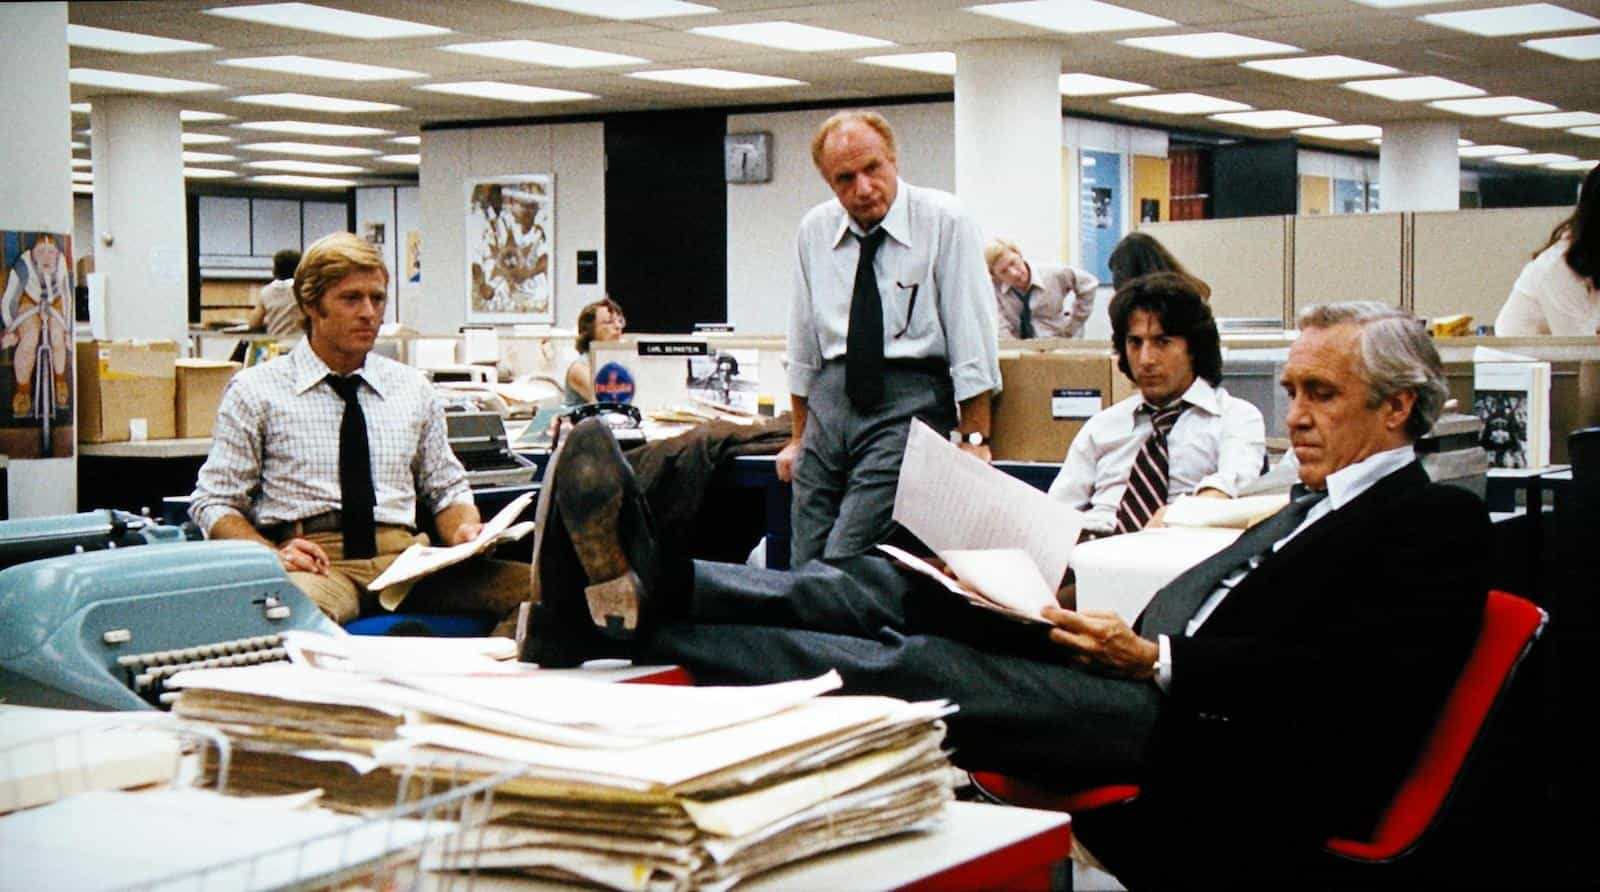 Deep Focus Shot - Best Camera Movement and Camera Angles - All The President's Men